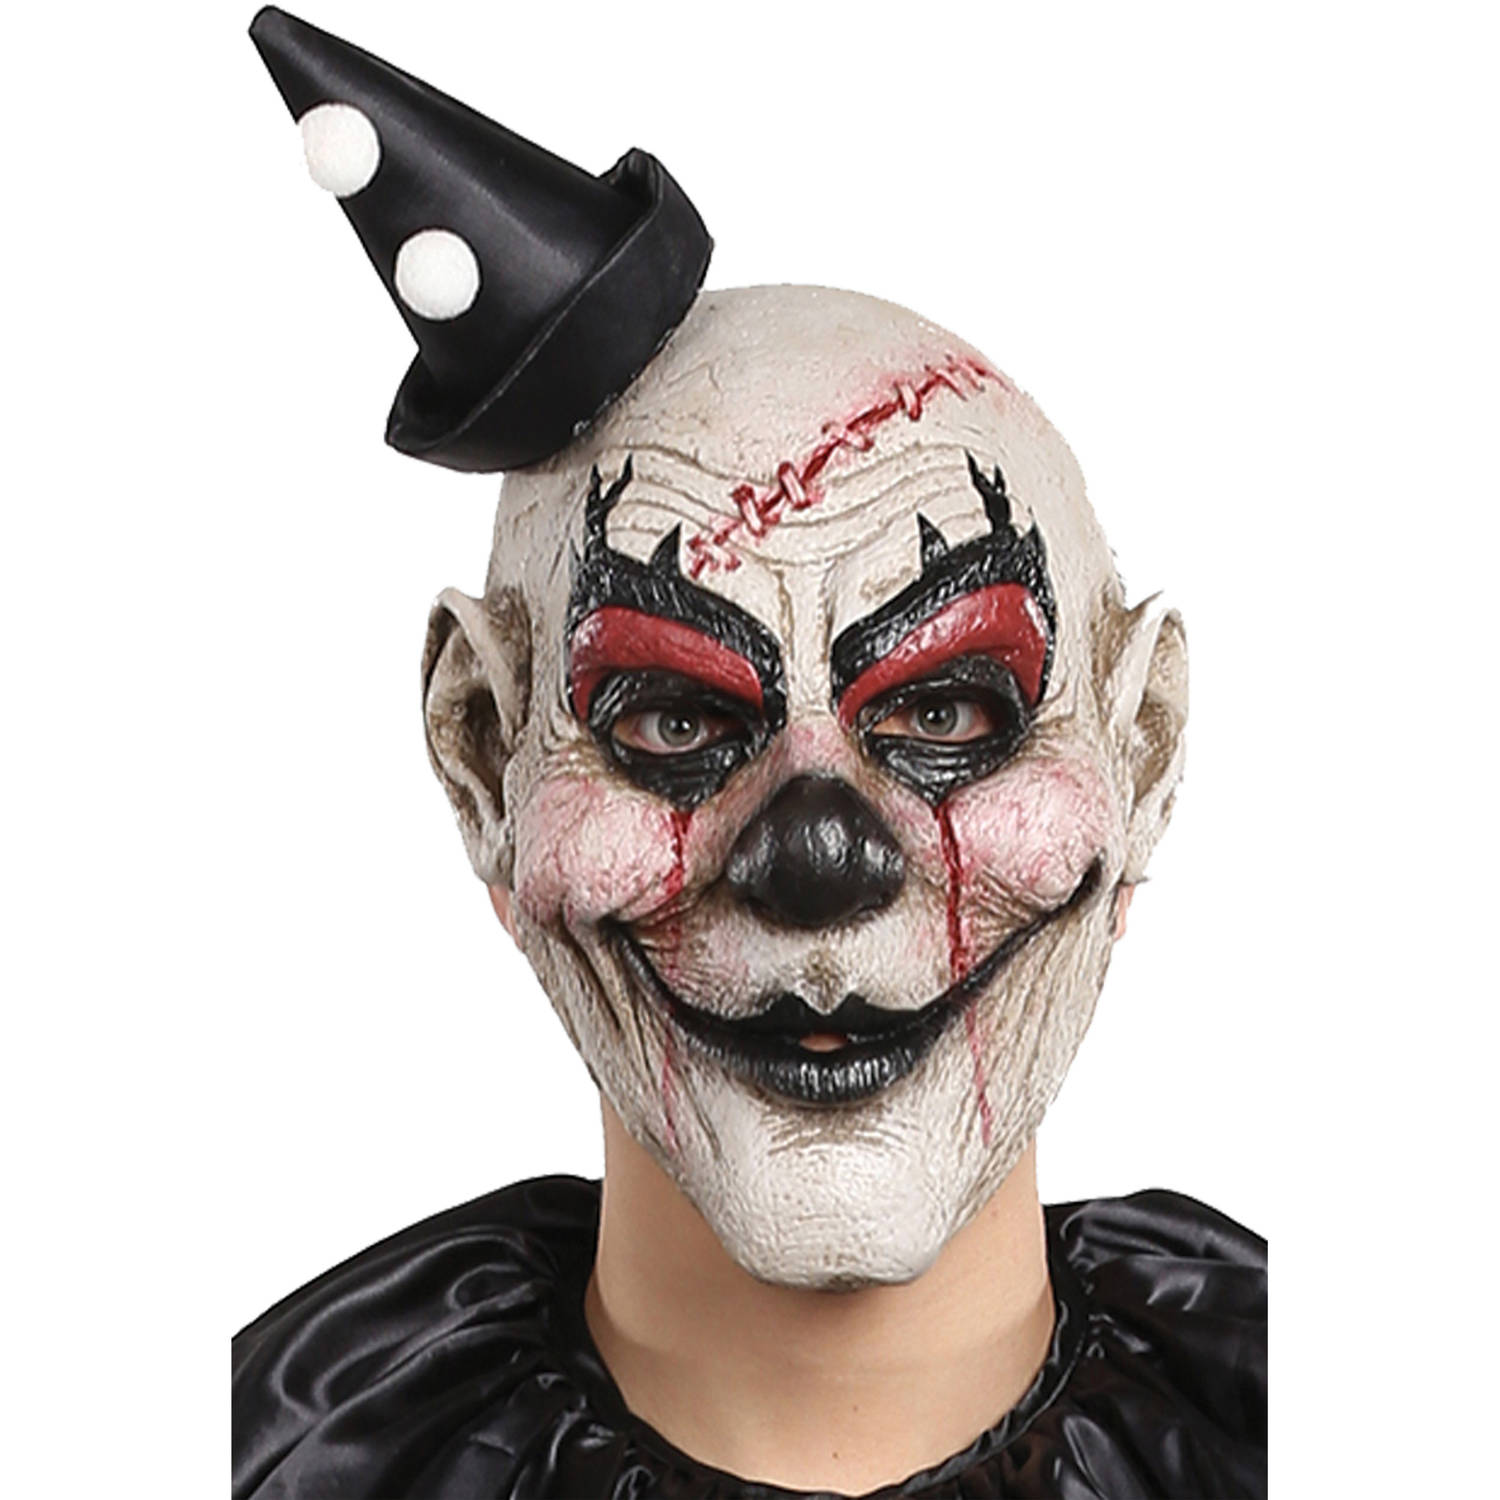 Killjoy Clown Mask Adult Halloween Accessory